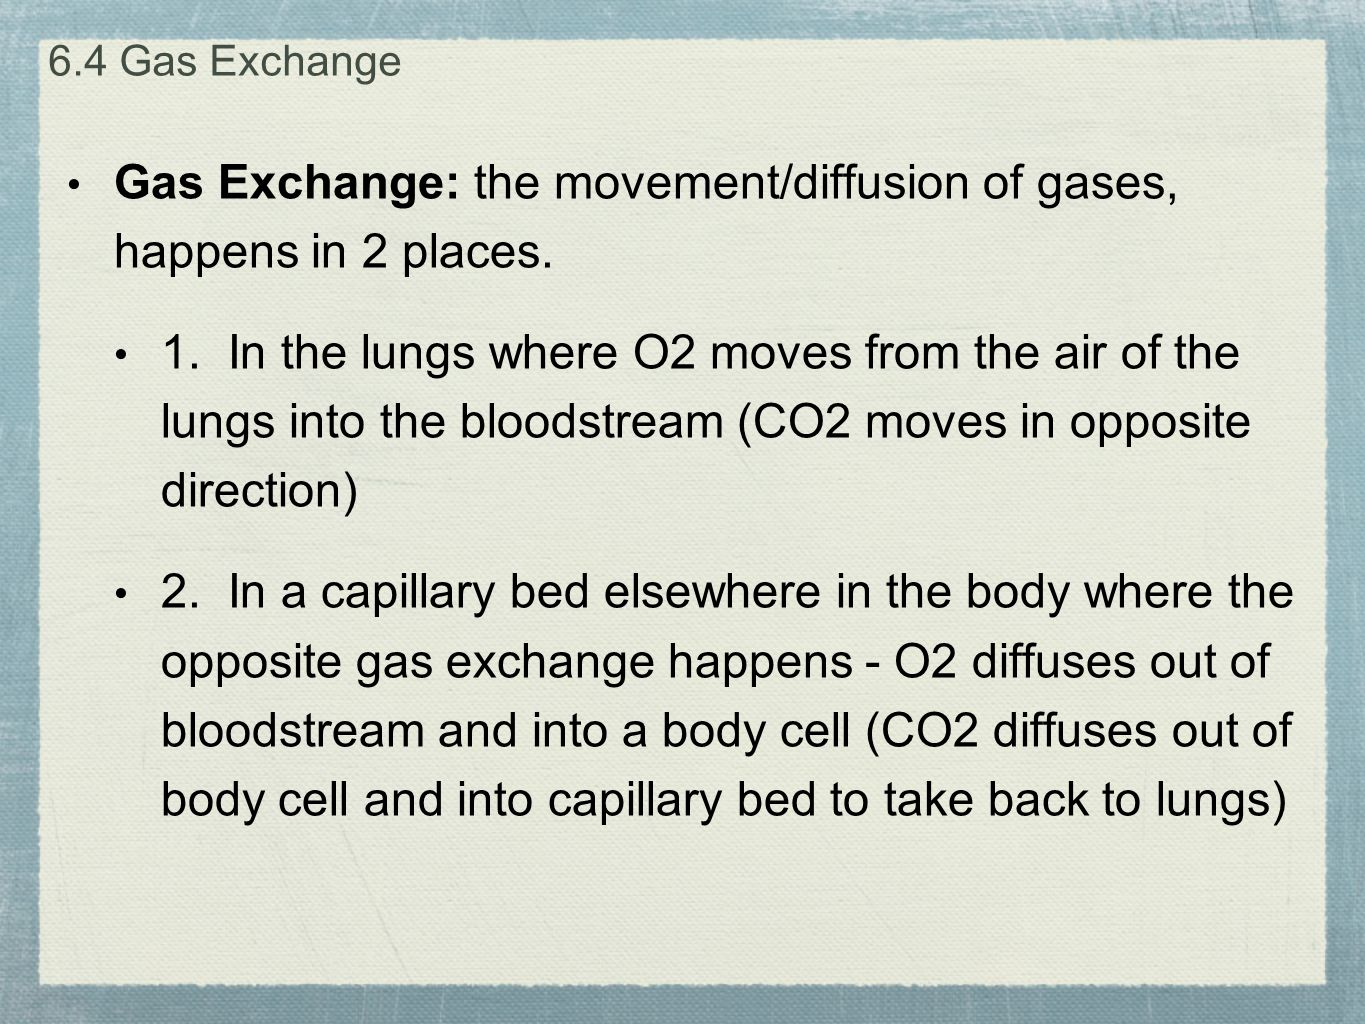 Gas Exchange: the movement/diffusion of gases, happens in 2 places.